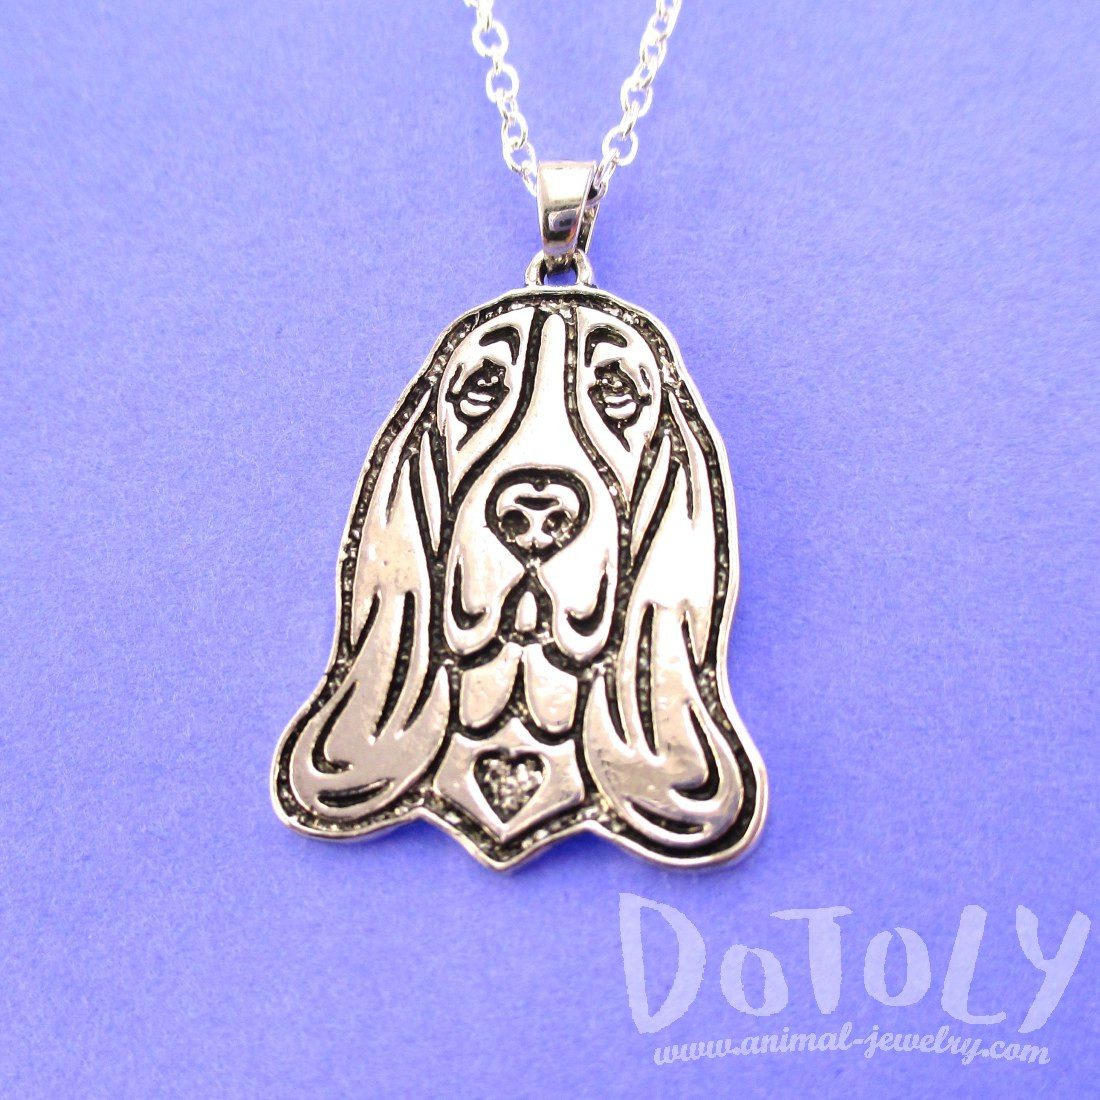 Basset Hound Dog Portrait Pendant Necklace in Silver